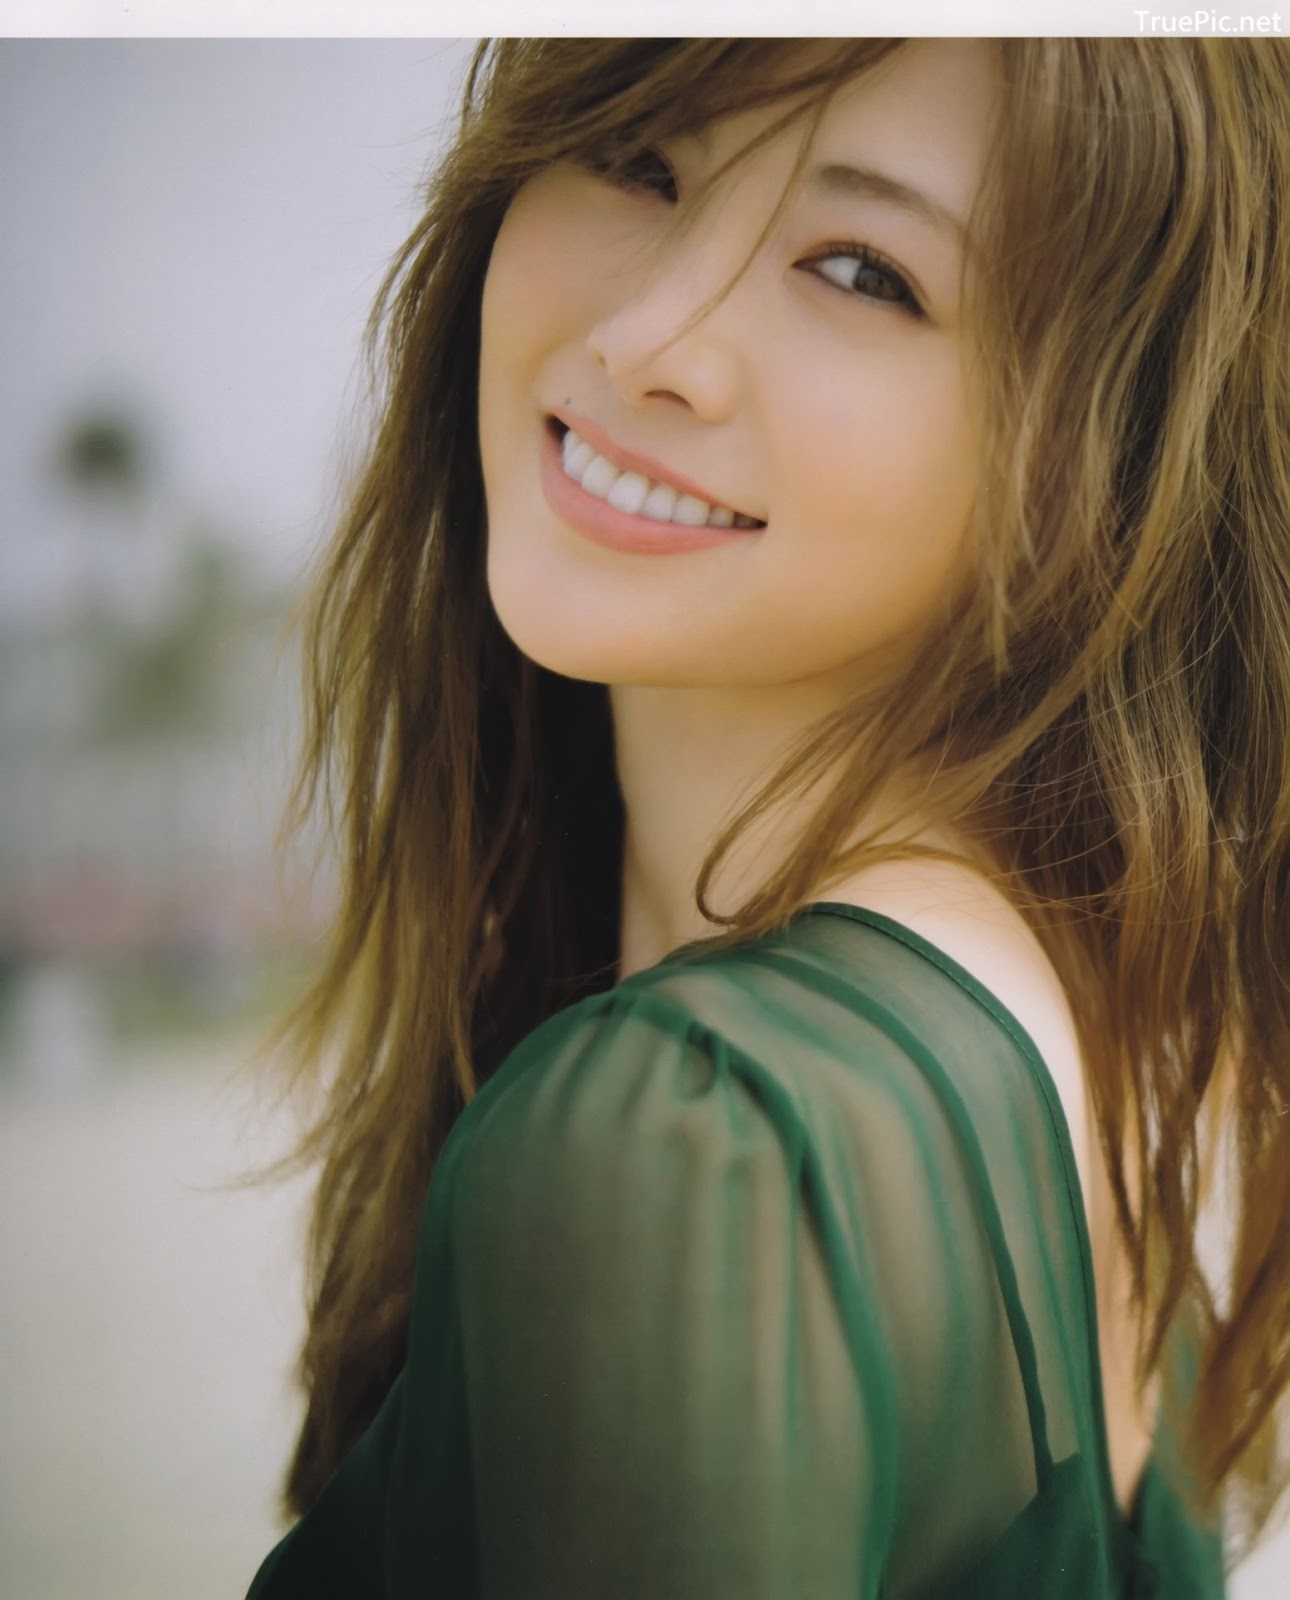 Image Japanese Singer And Model - Mai Shiraishi - Charming Beauty Of Angel - TruePic.net - Picture-6